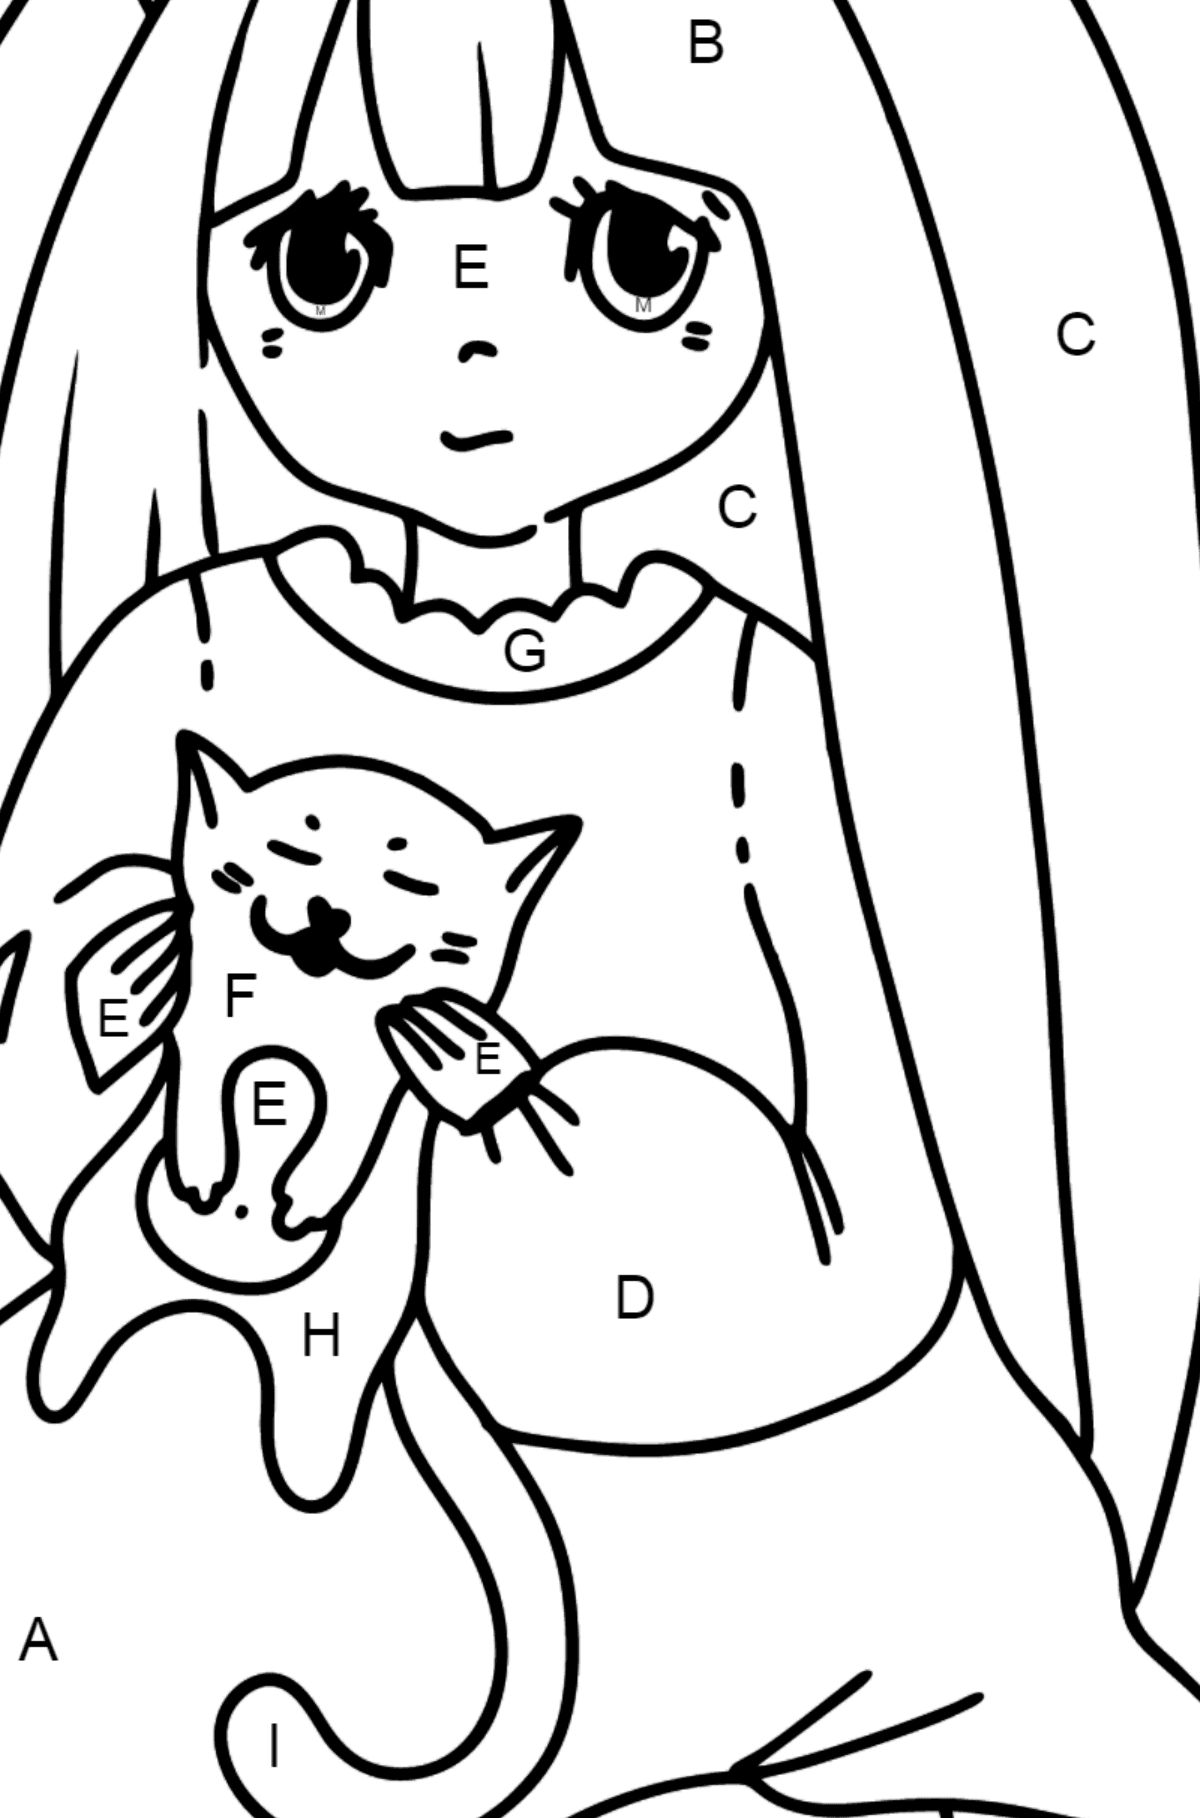 Anime Girl Playing with Kitten coloring page - Coloring by Letters for Kids